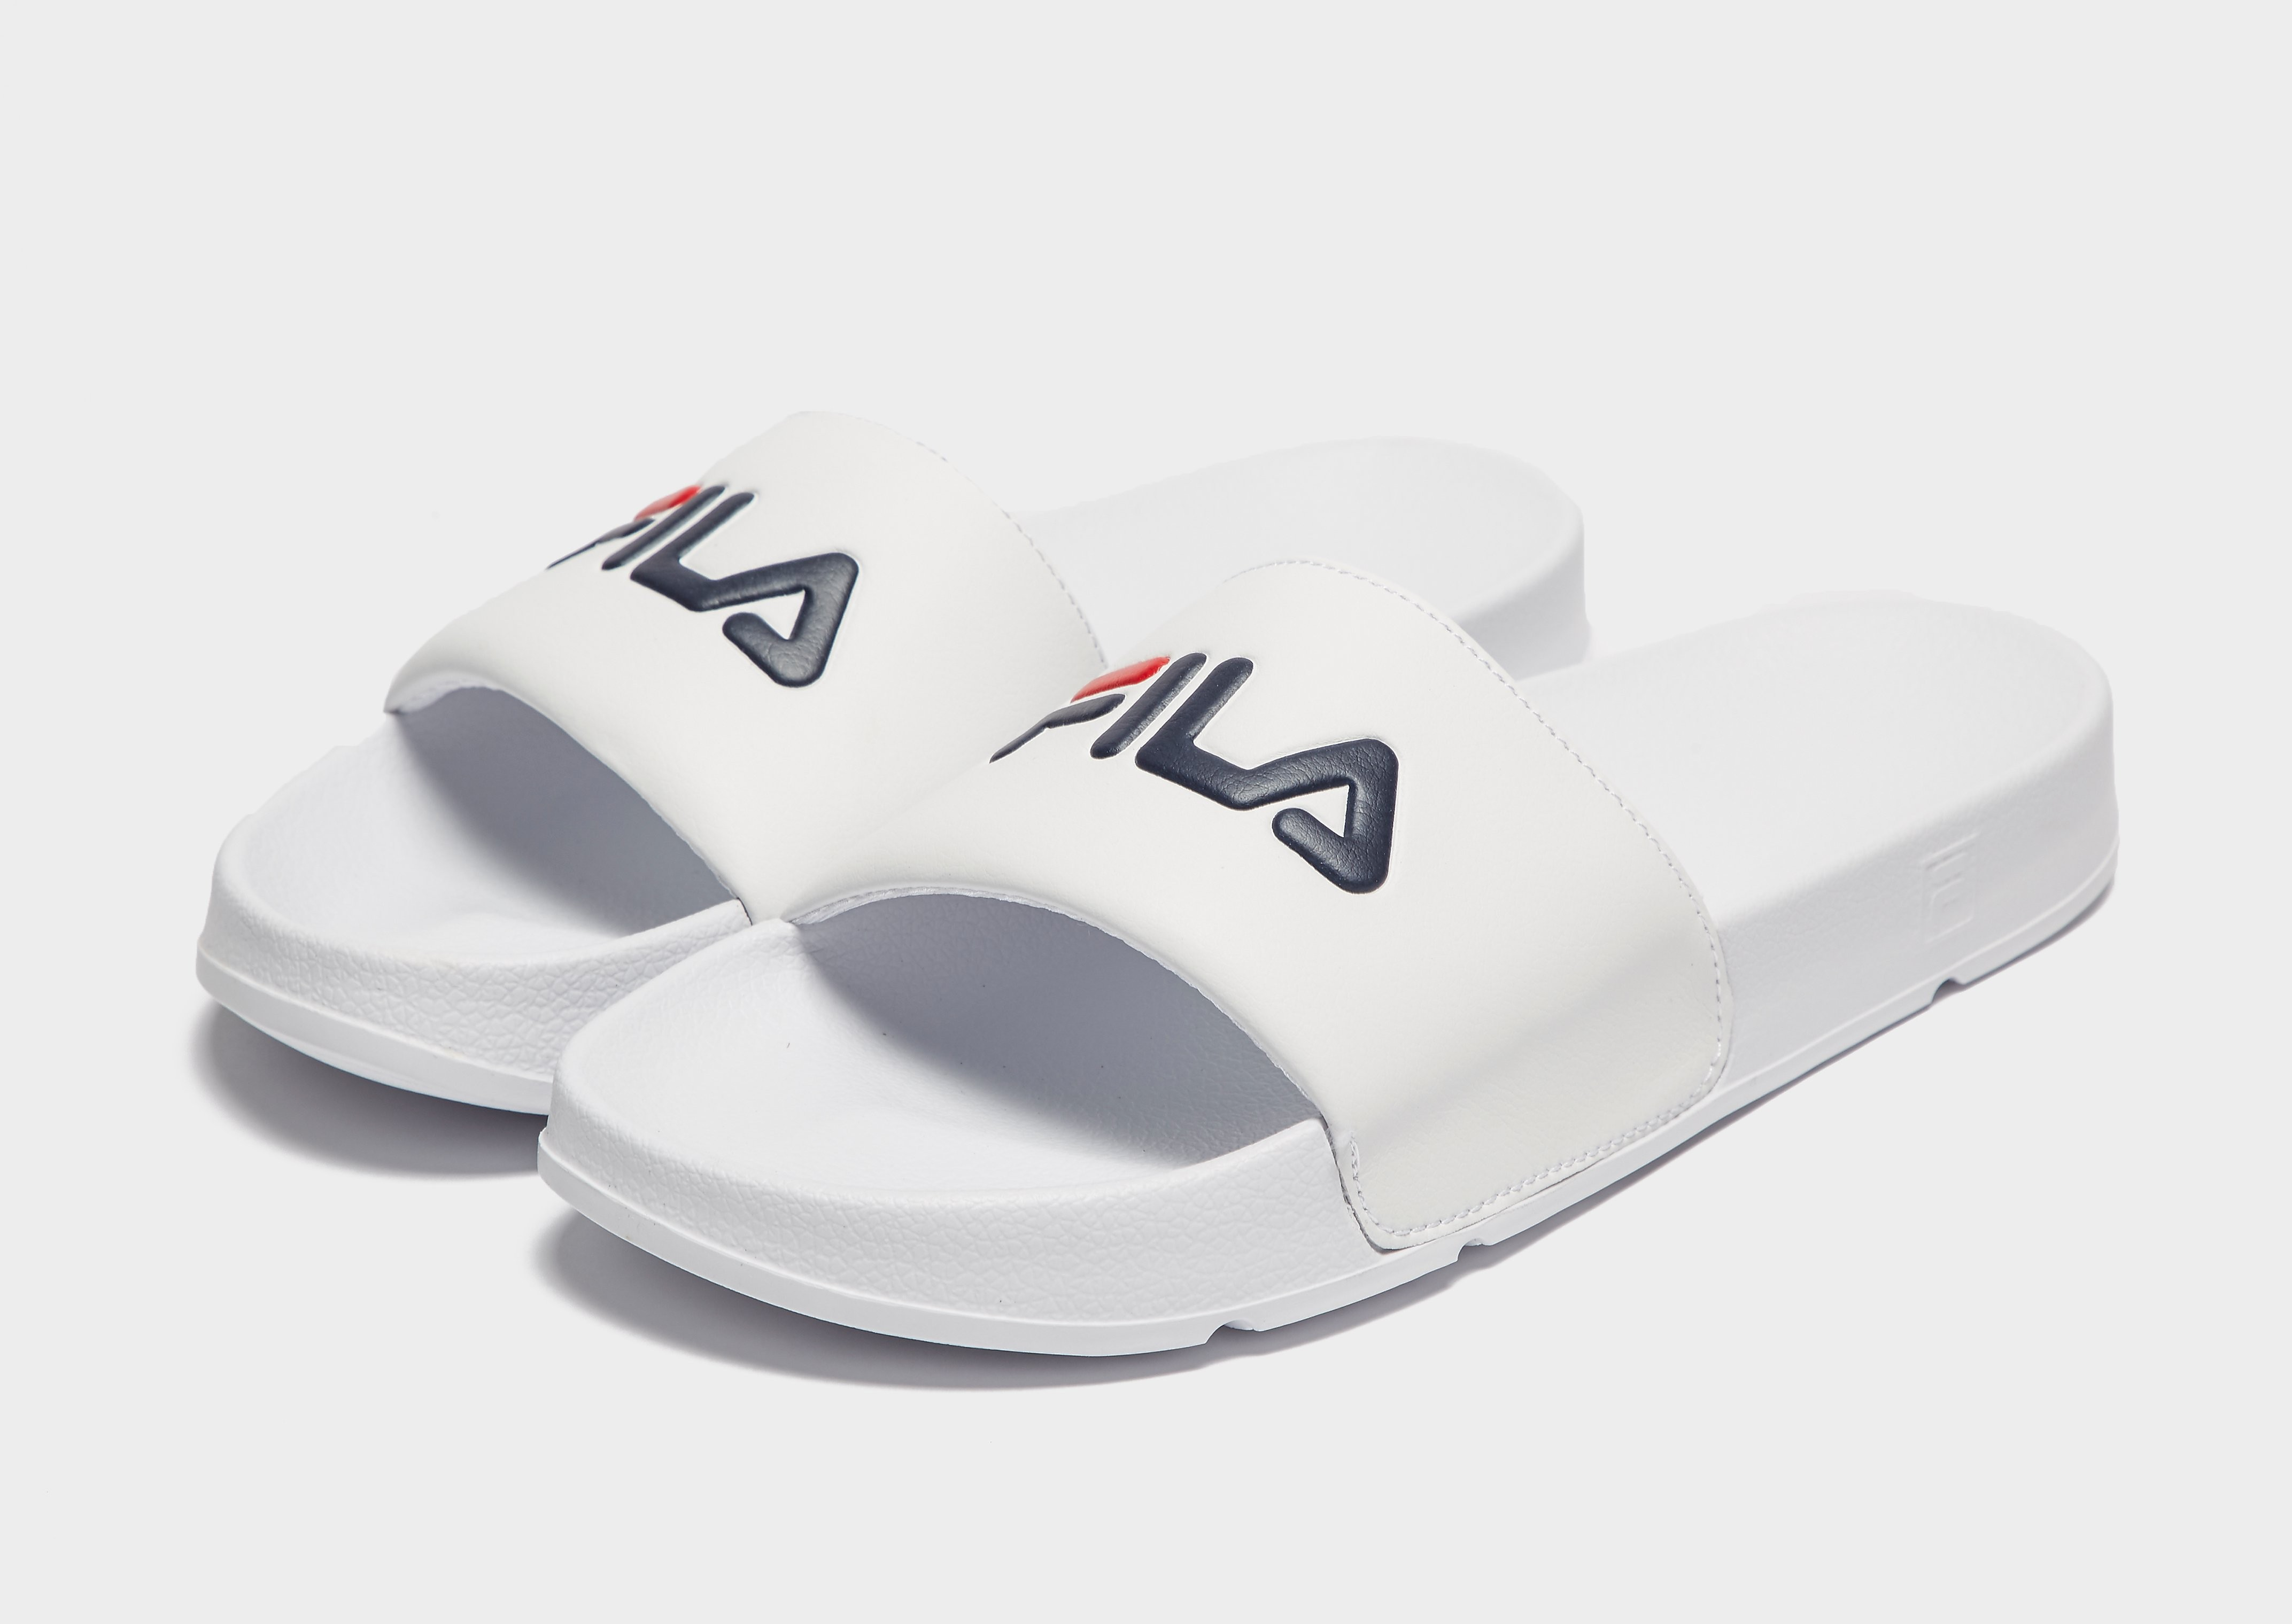 Fila Claquettes Homme